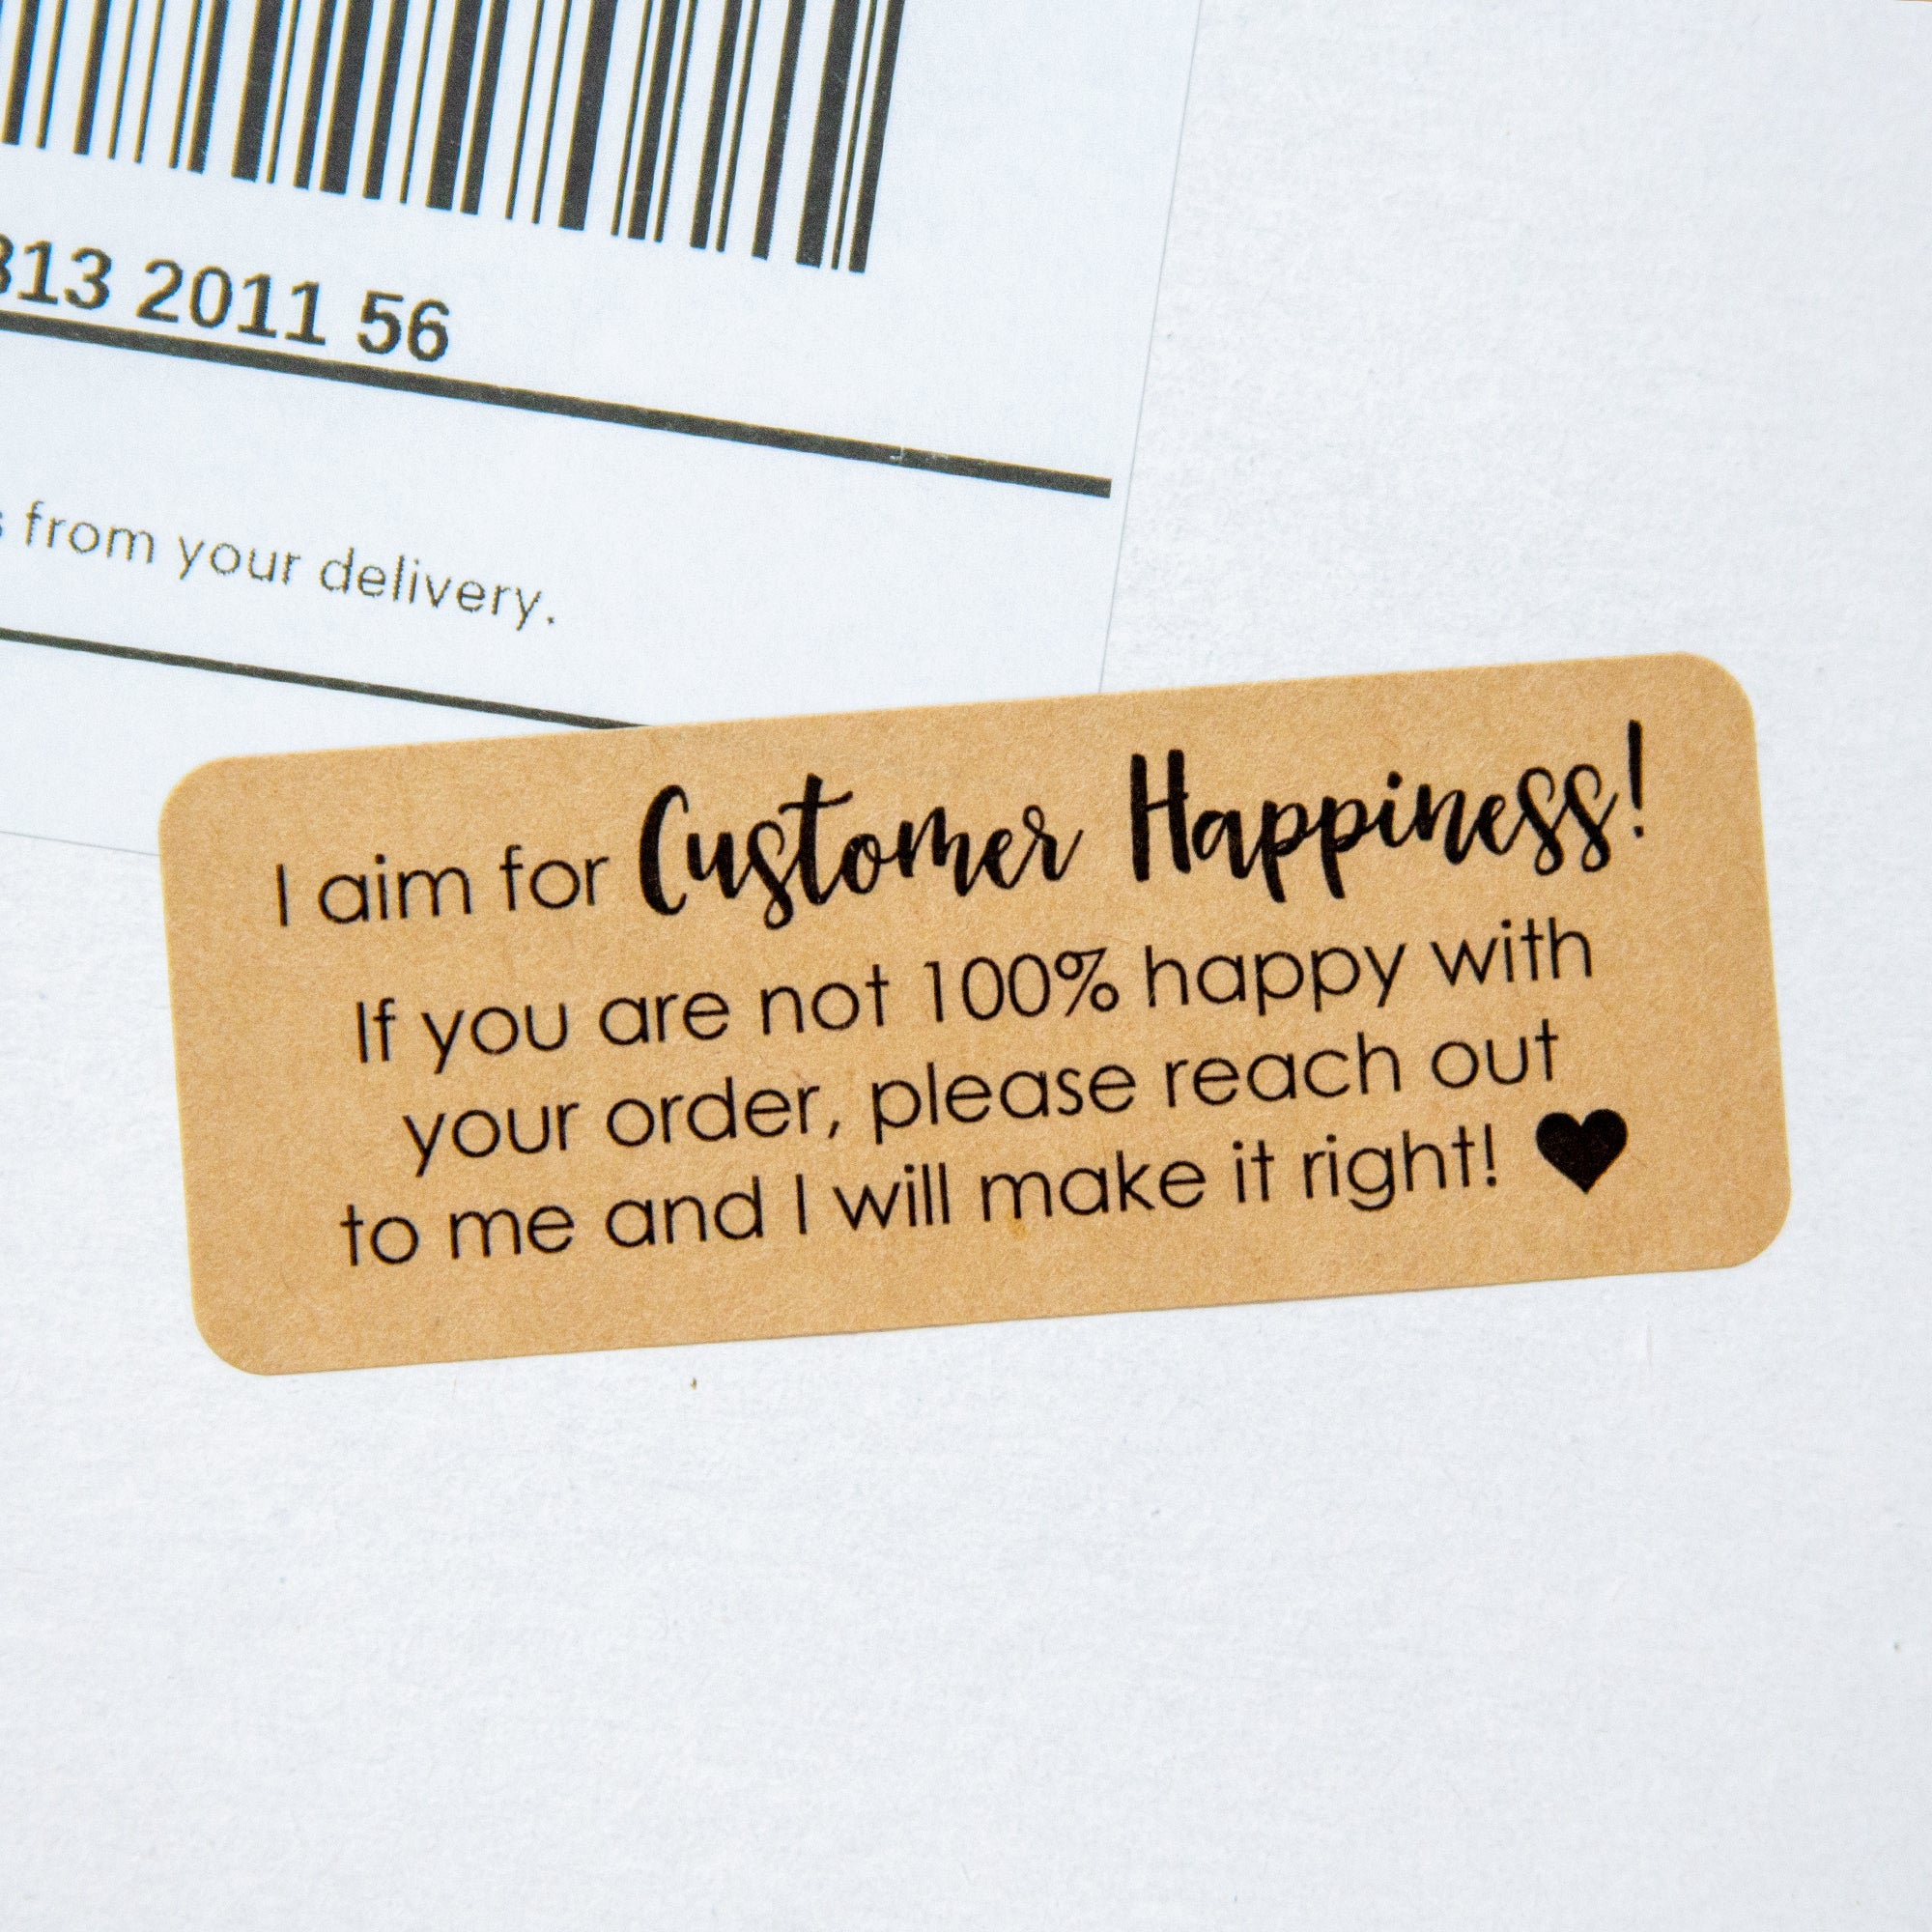 Customer Happiness Stickers - Customer Service Stickers - 150 Stickers